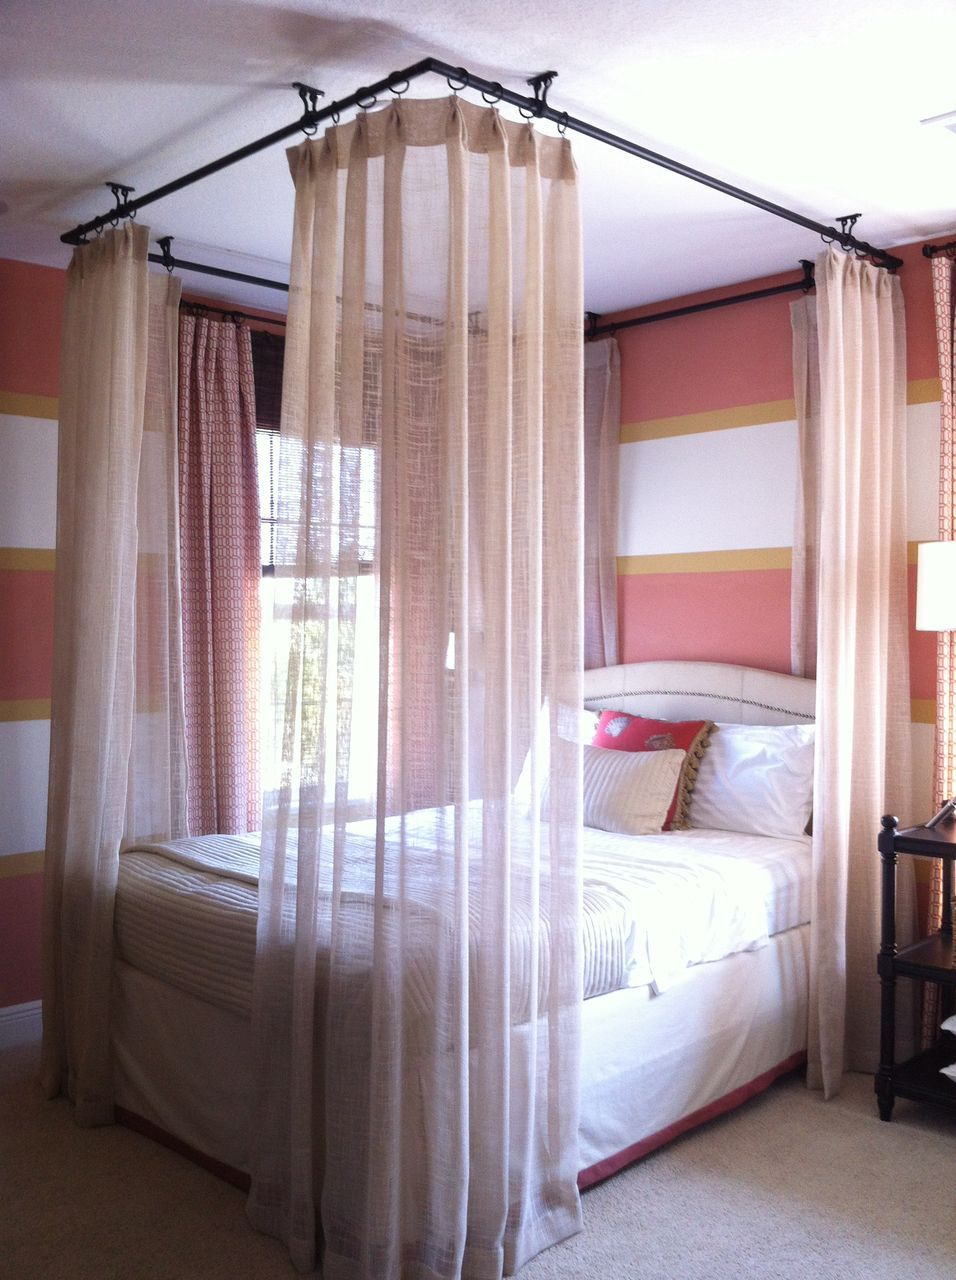 Ceiling Hung Curtains Around Bed Bedrooms Curtains Around Bed